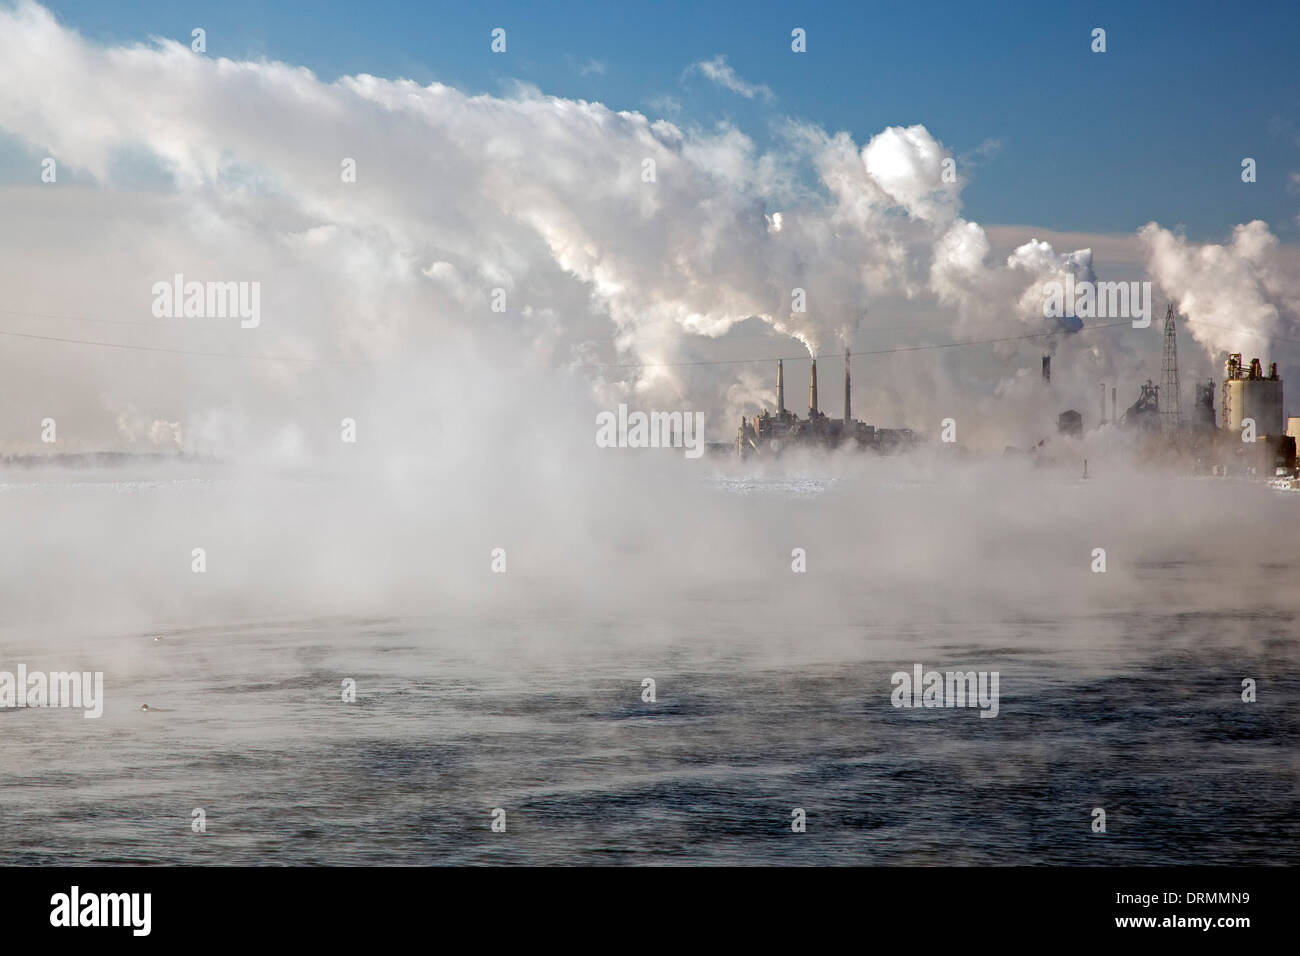 Detroit, Michigan - Smoke from industry mixes with water vapor from the Detroit River on a below zero morning. - Stock Image